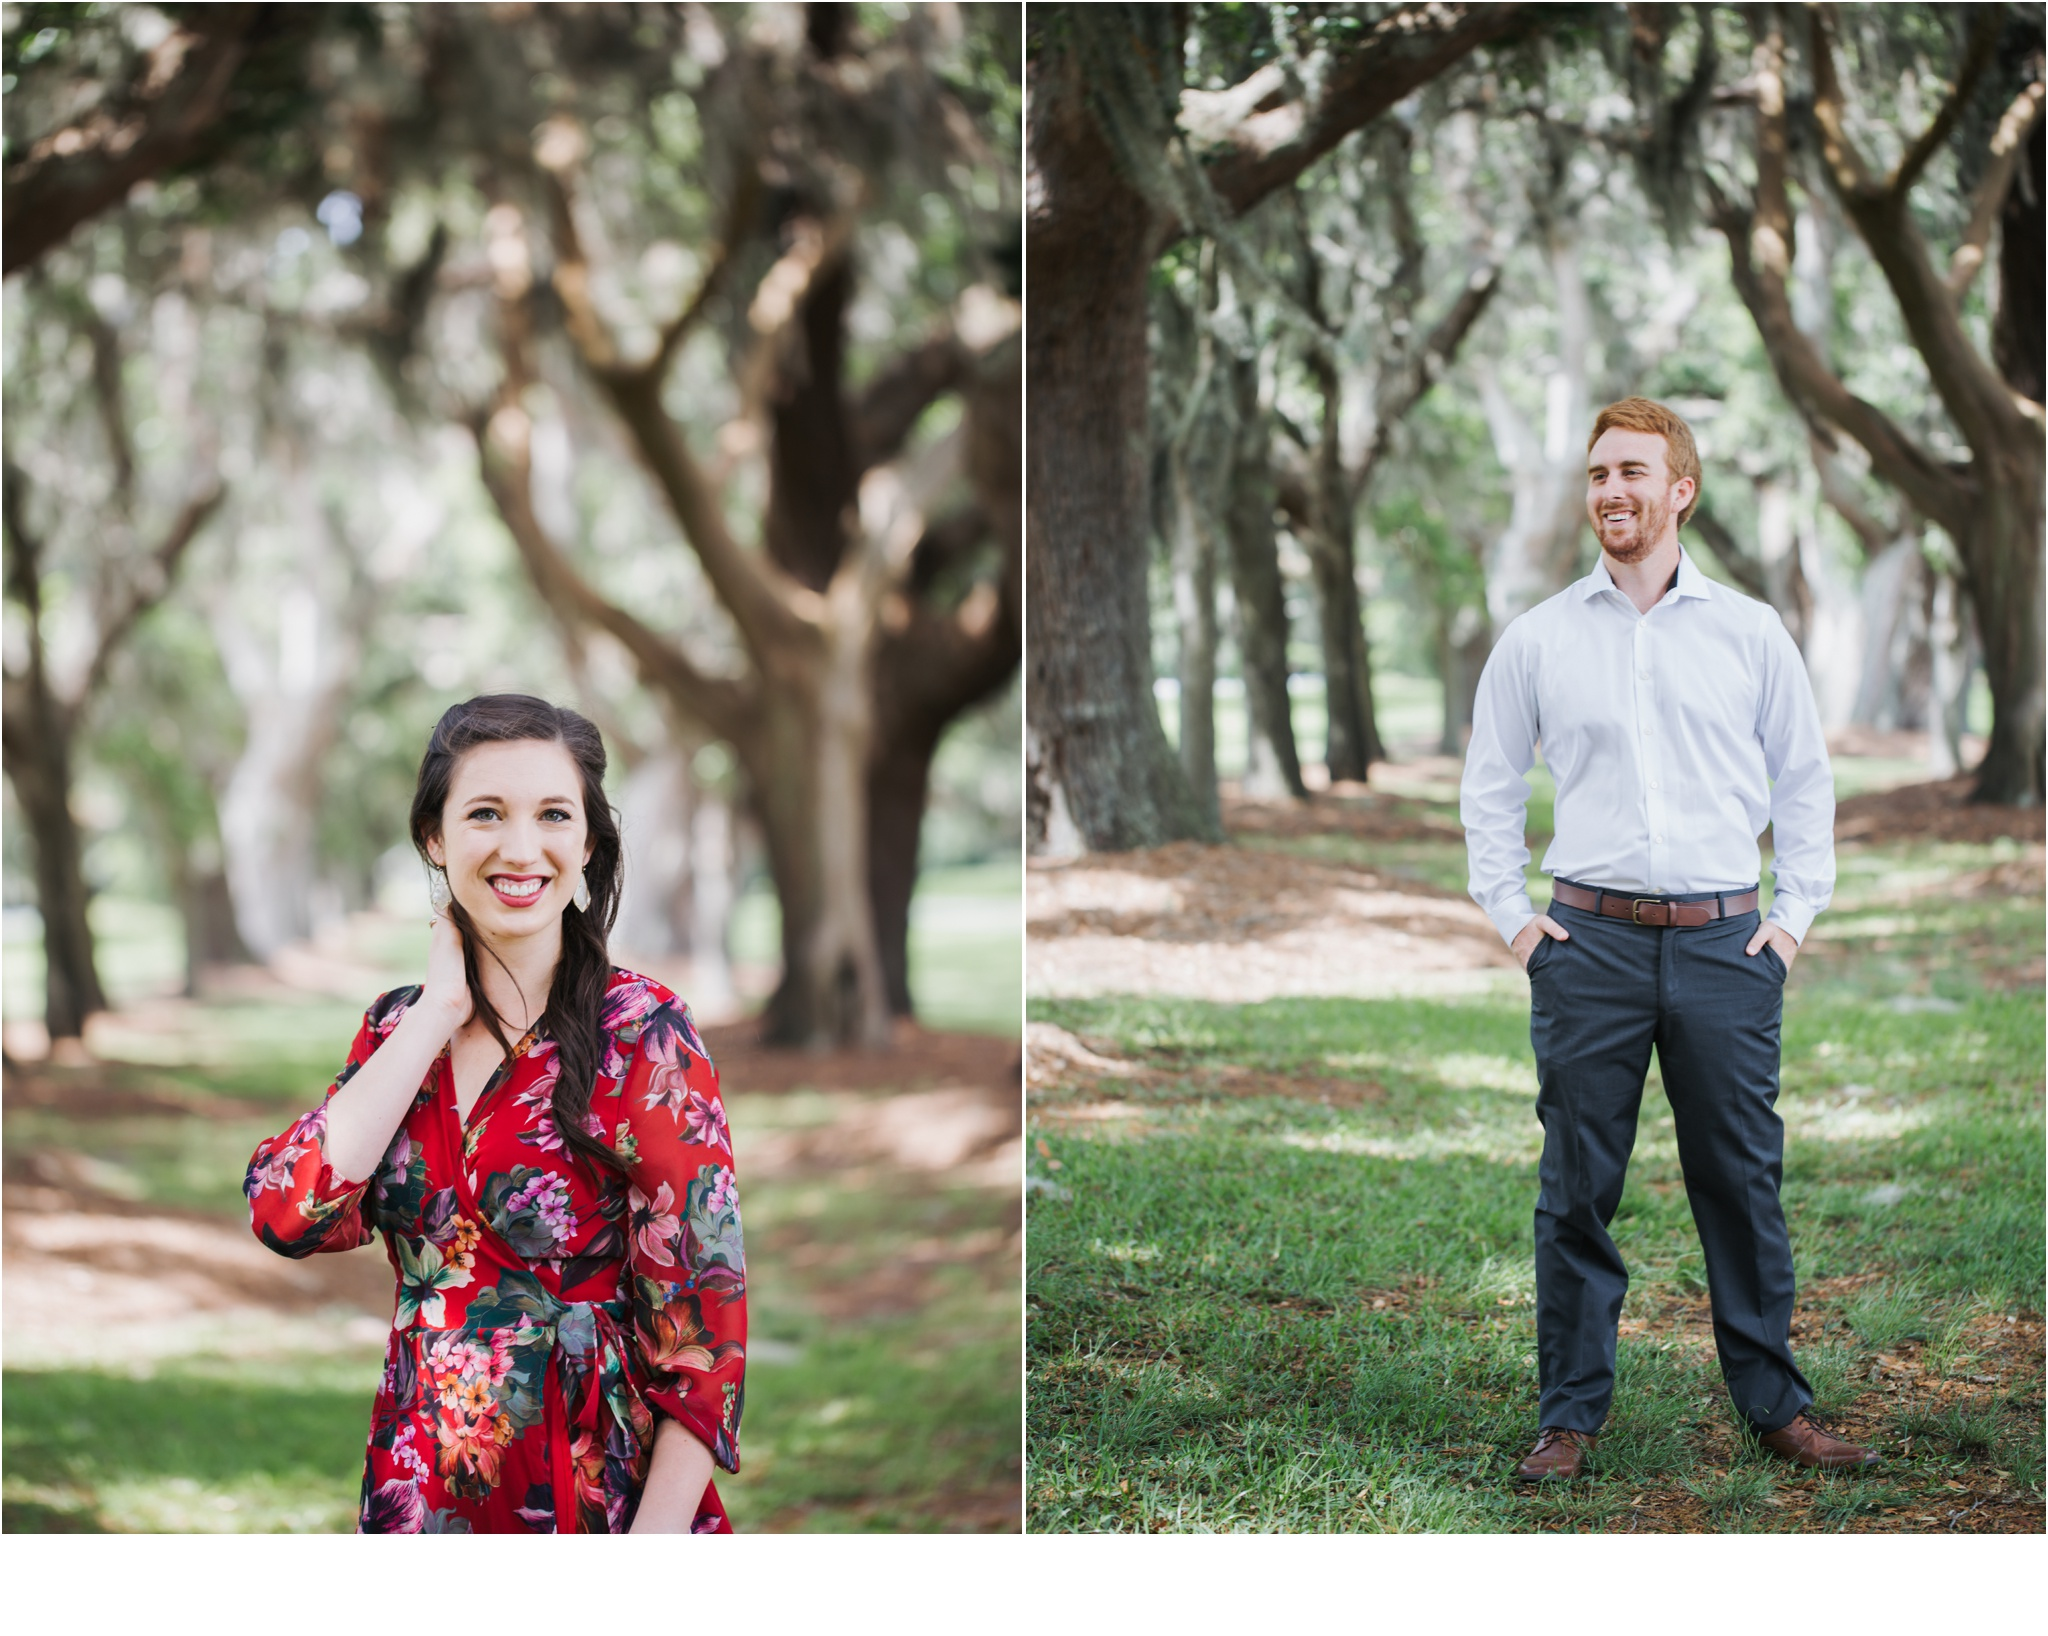 Rainey_Gregg_Photography_St._Simons_Island_Georgia_California_Wedding_Portrait_Photography_1422.jpg